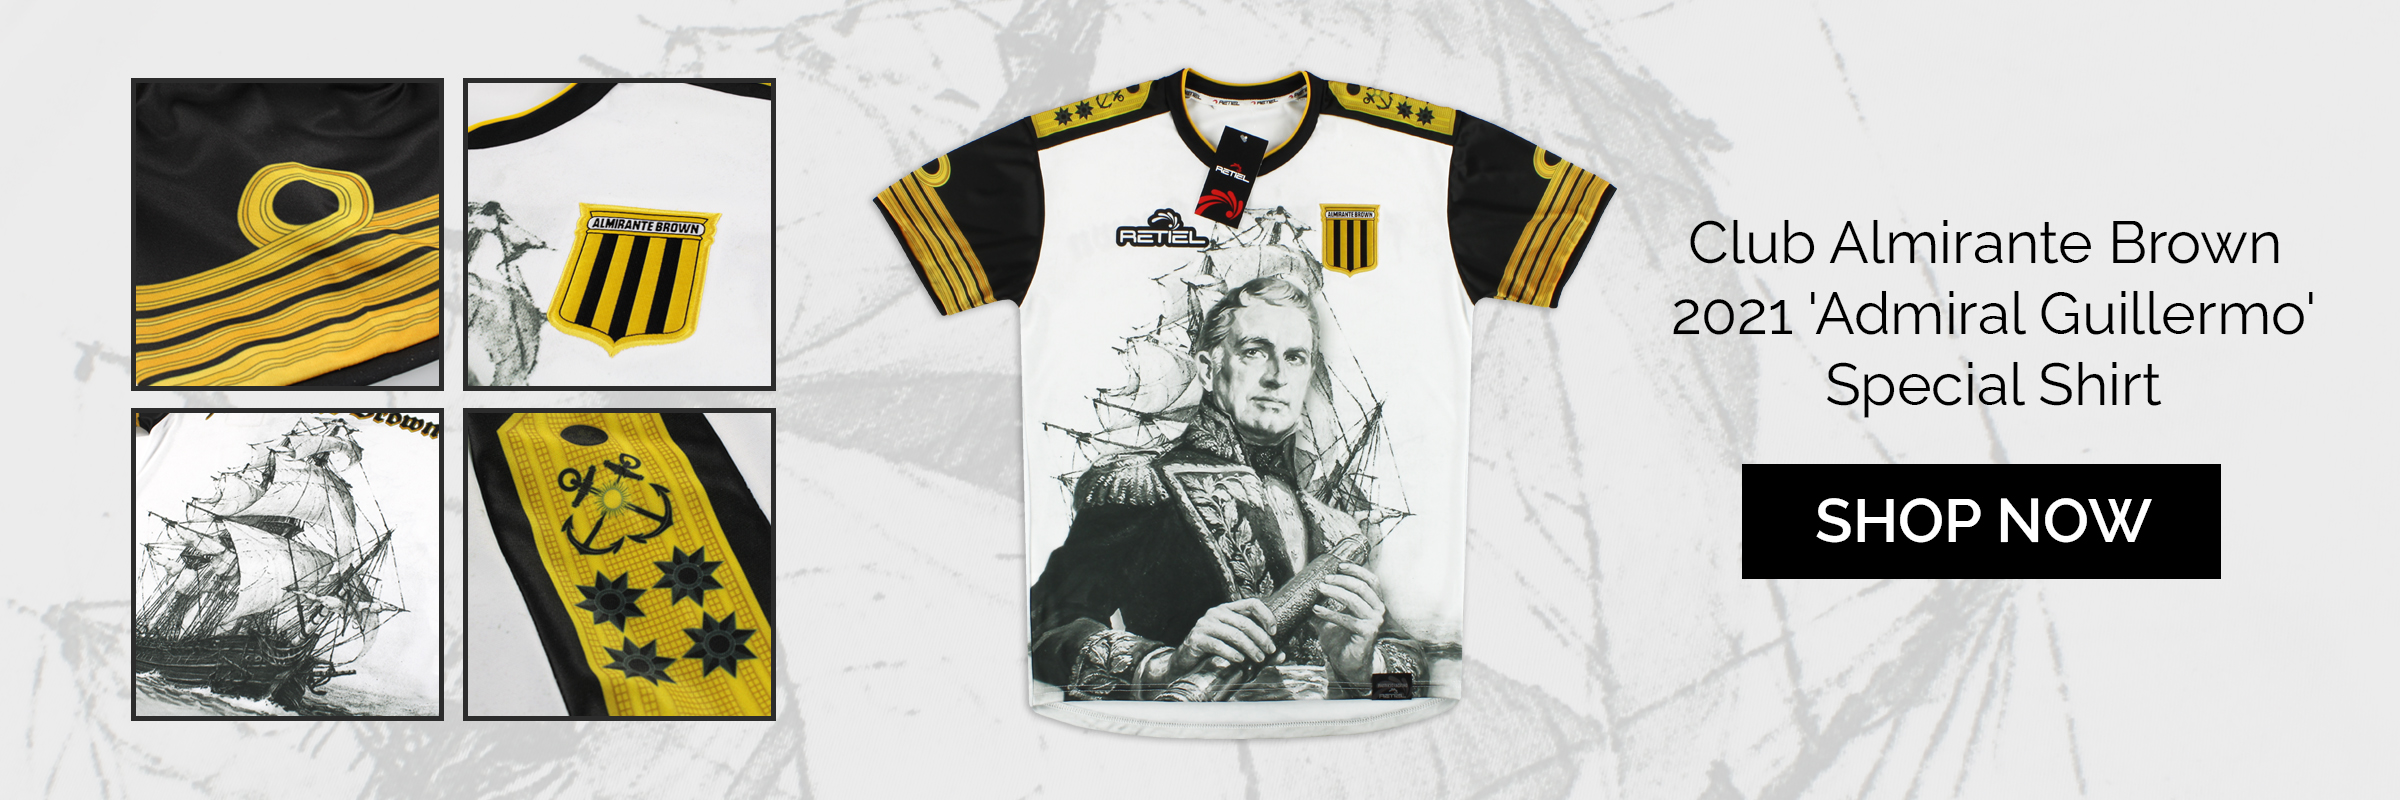 2021 Club Almirante Brown 'Admiral Guillermo' Special Shirt